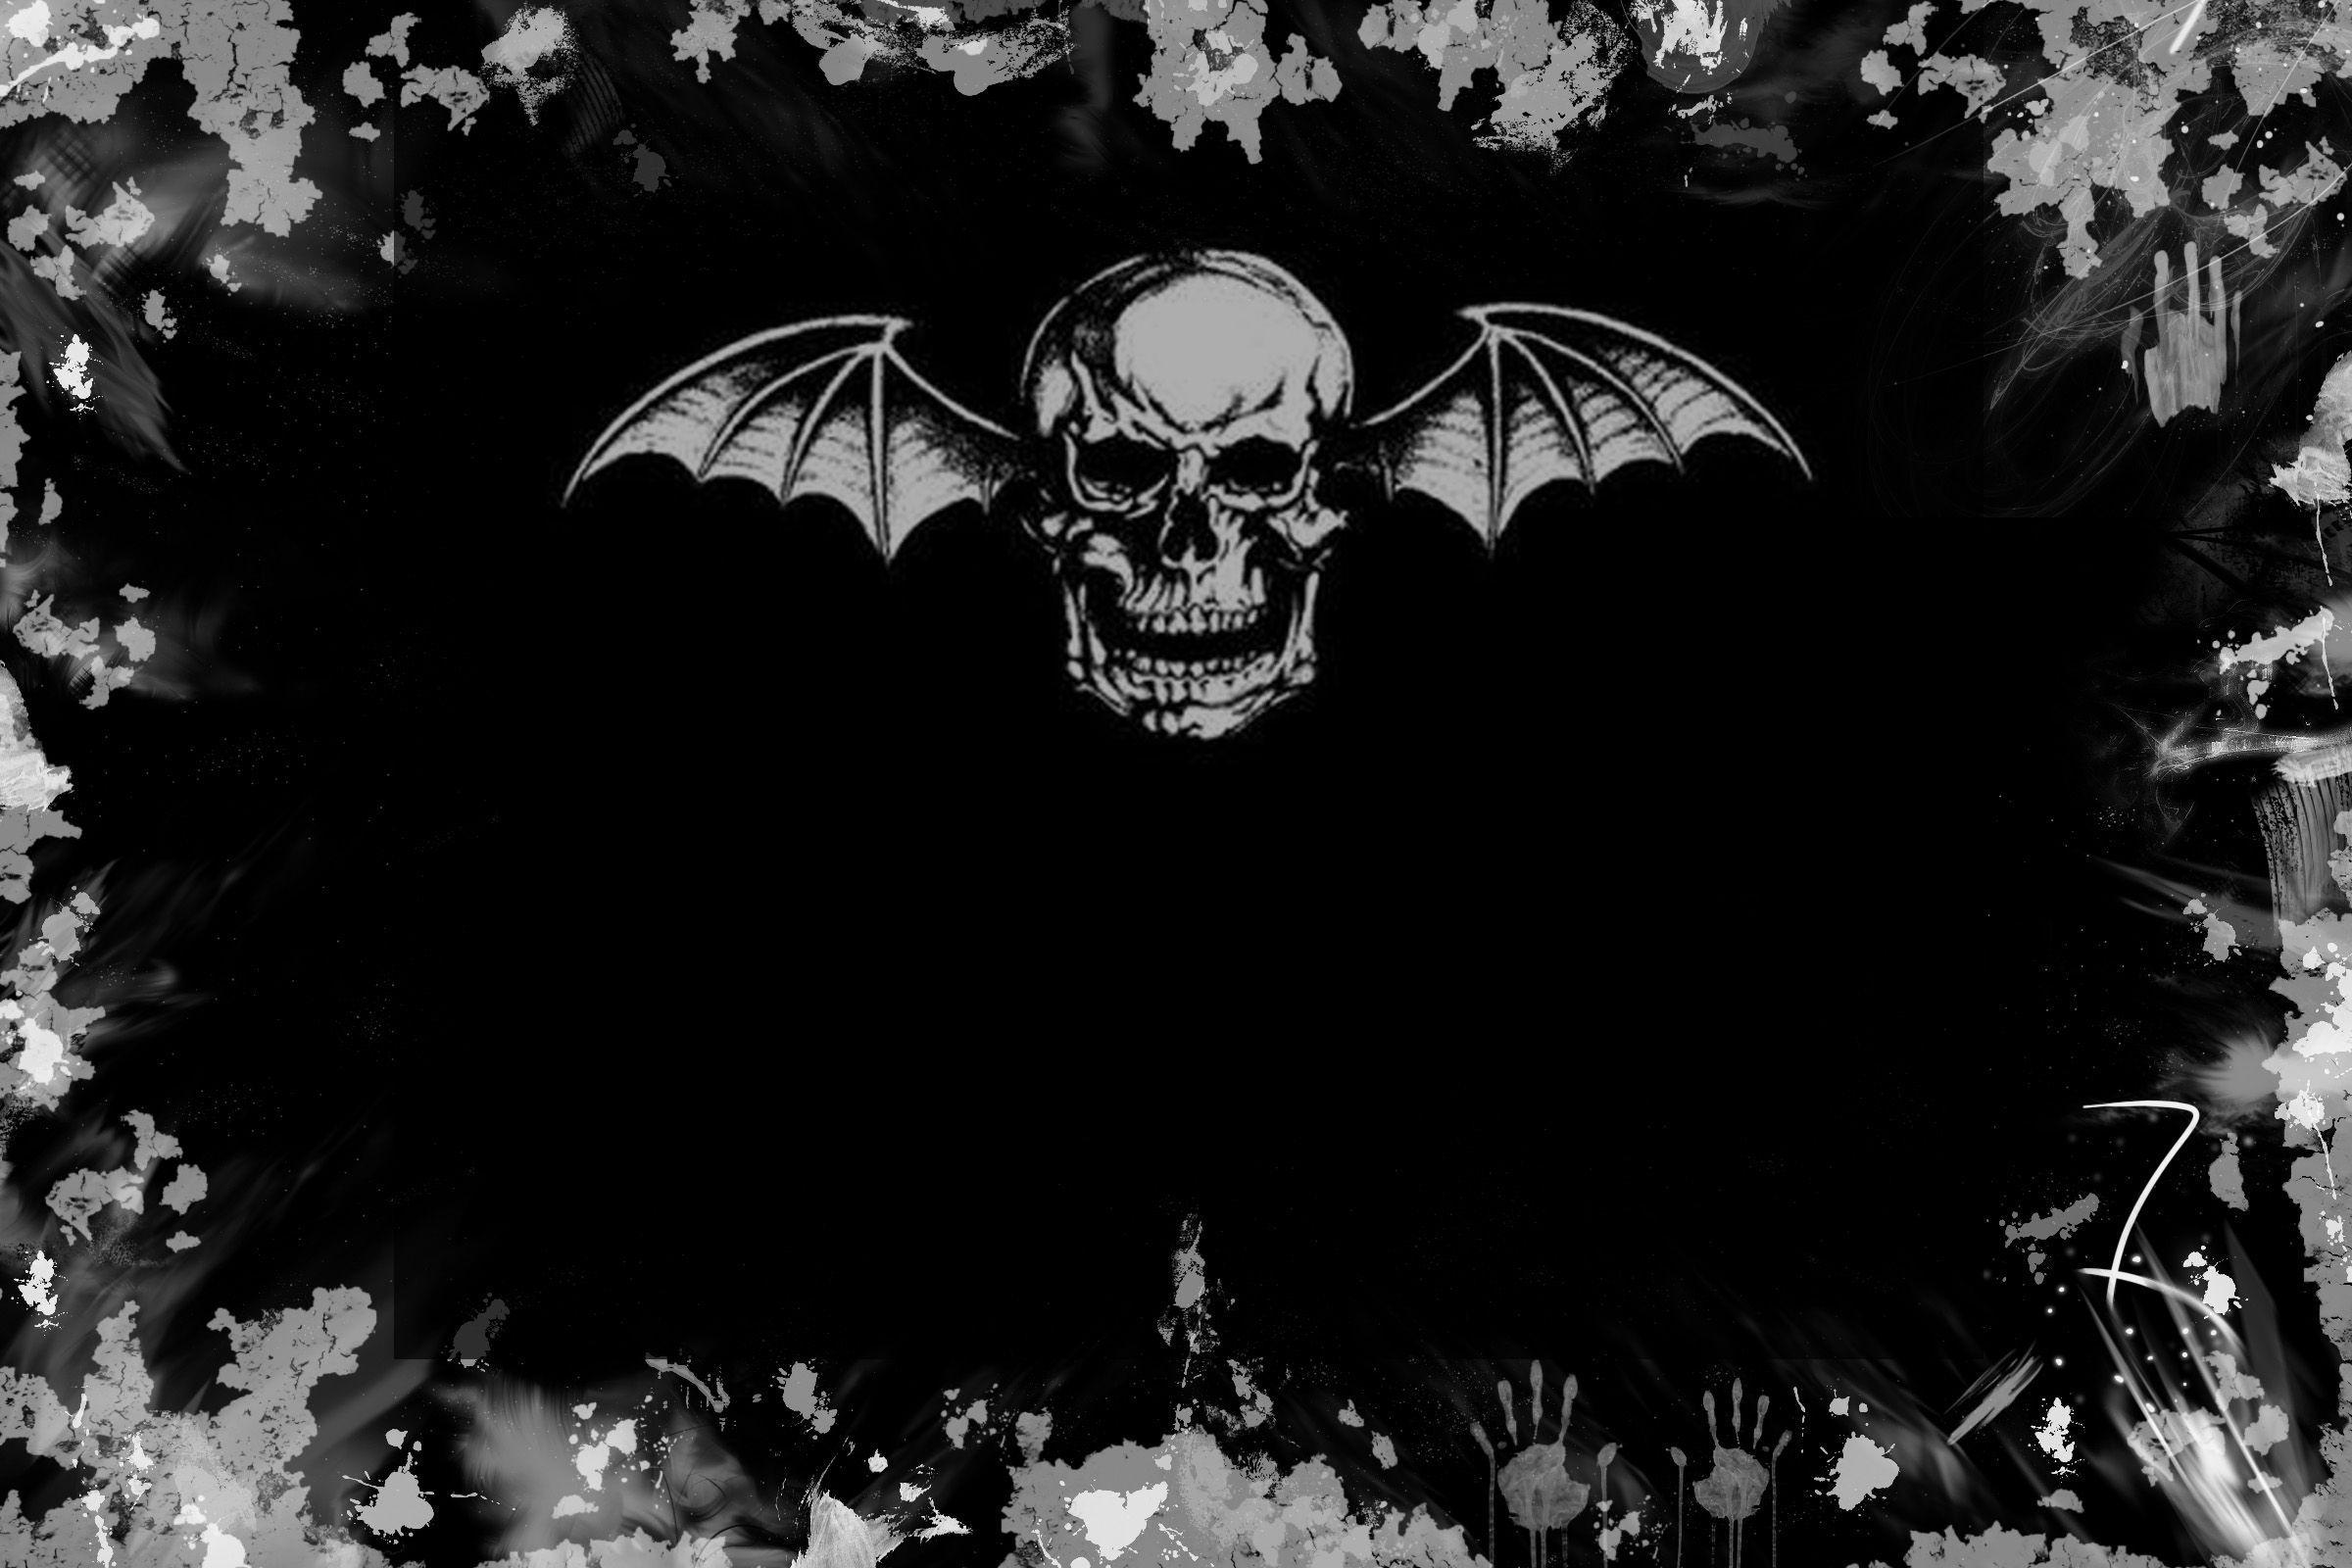 Avenged sevenfold wallpapers wallpaper cave avenged sevenfold hd wide wallpaper 26670 wallpaper risewall voltagebd Images